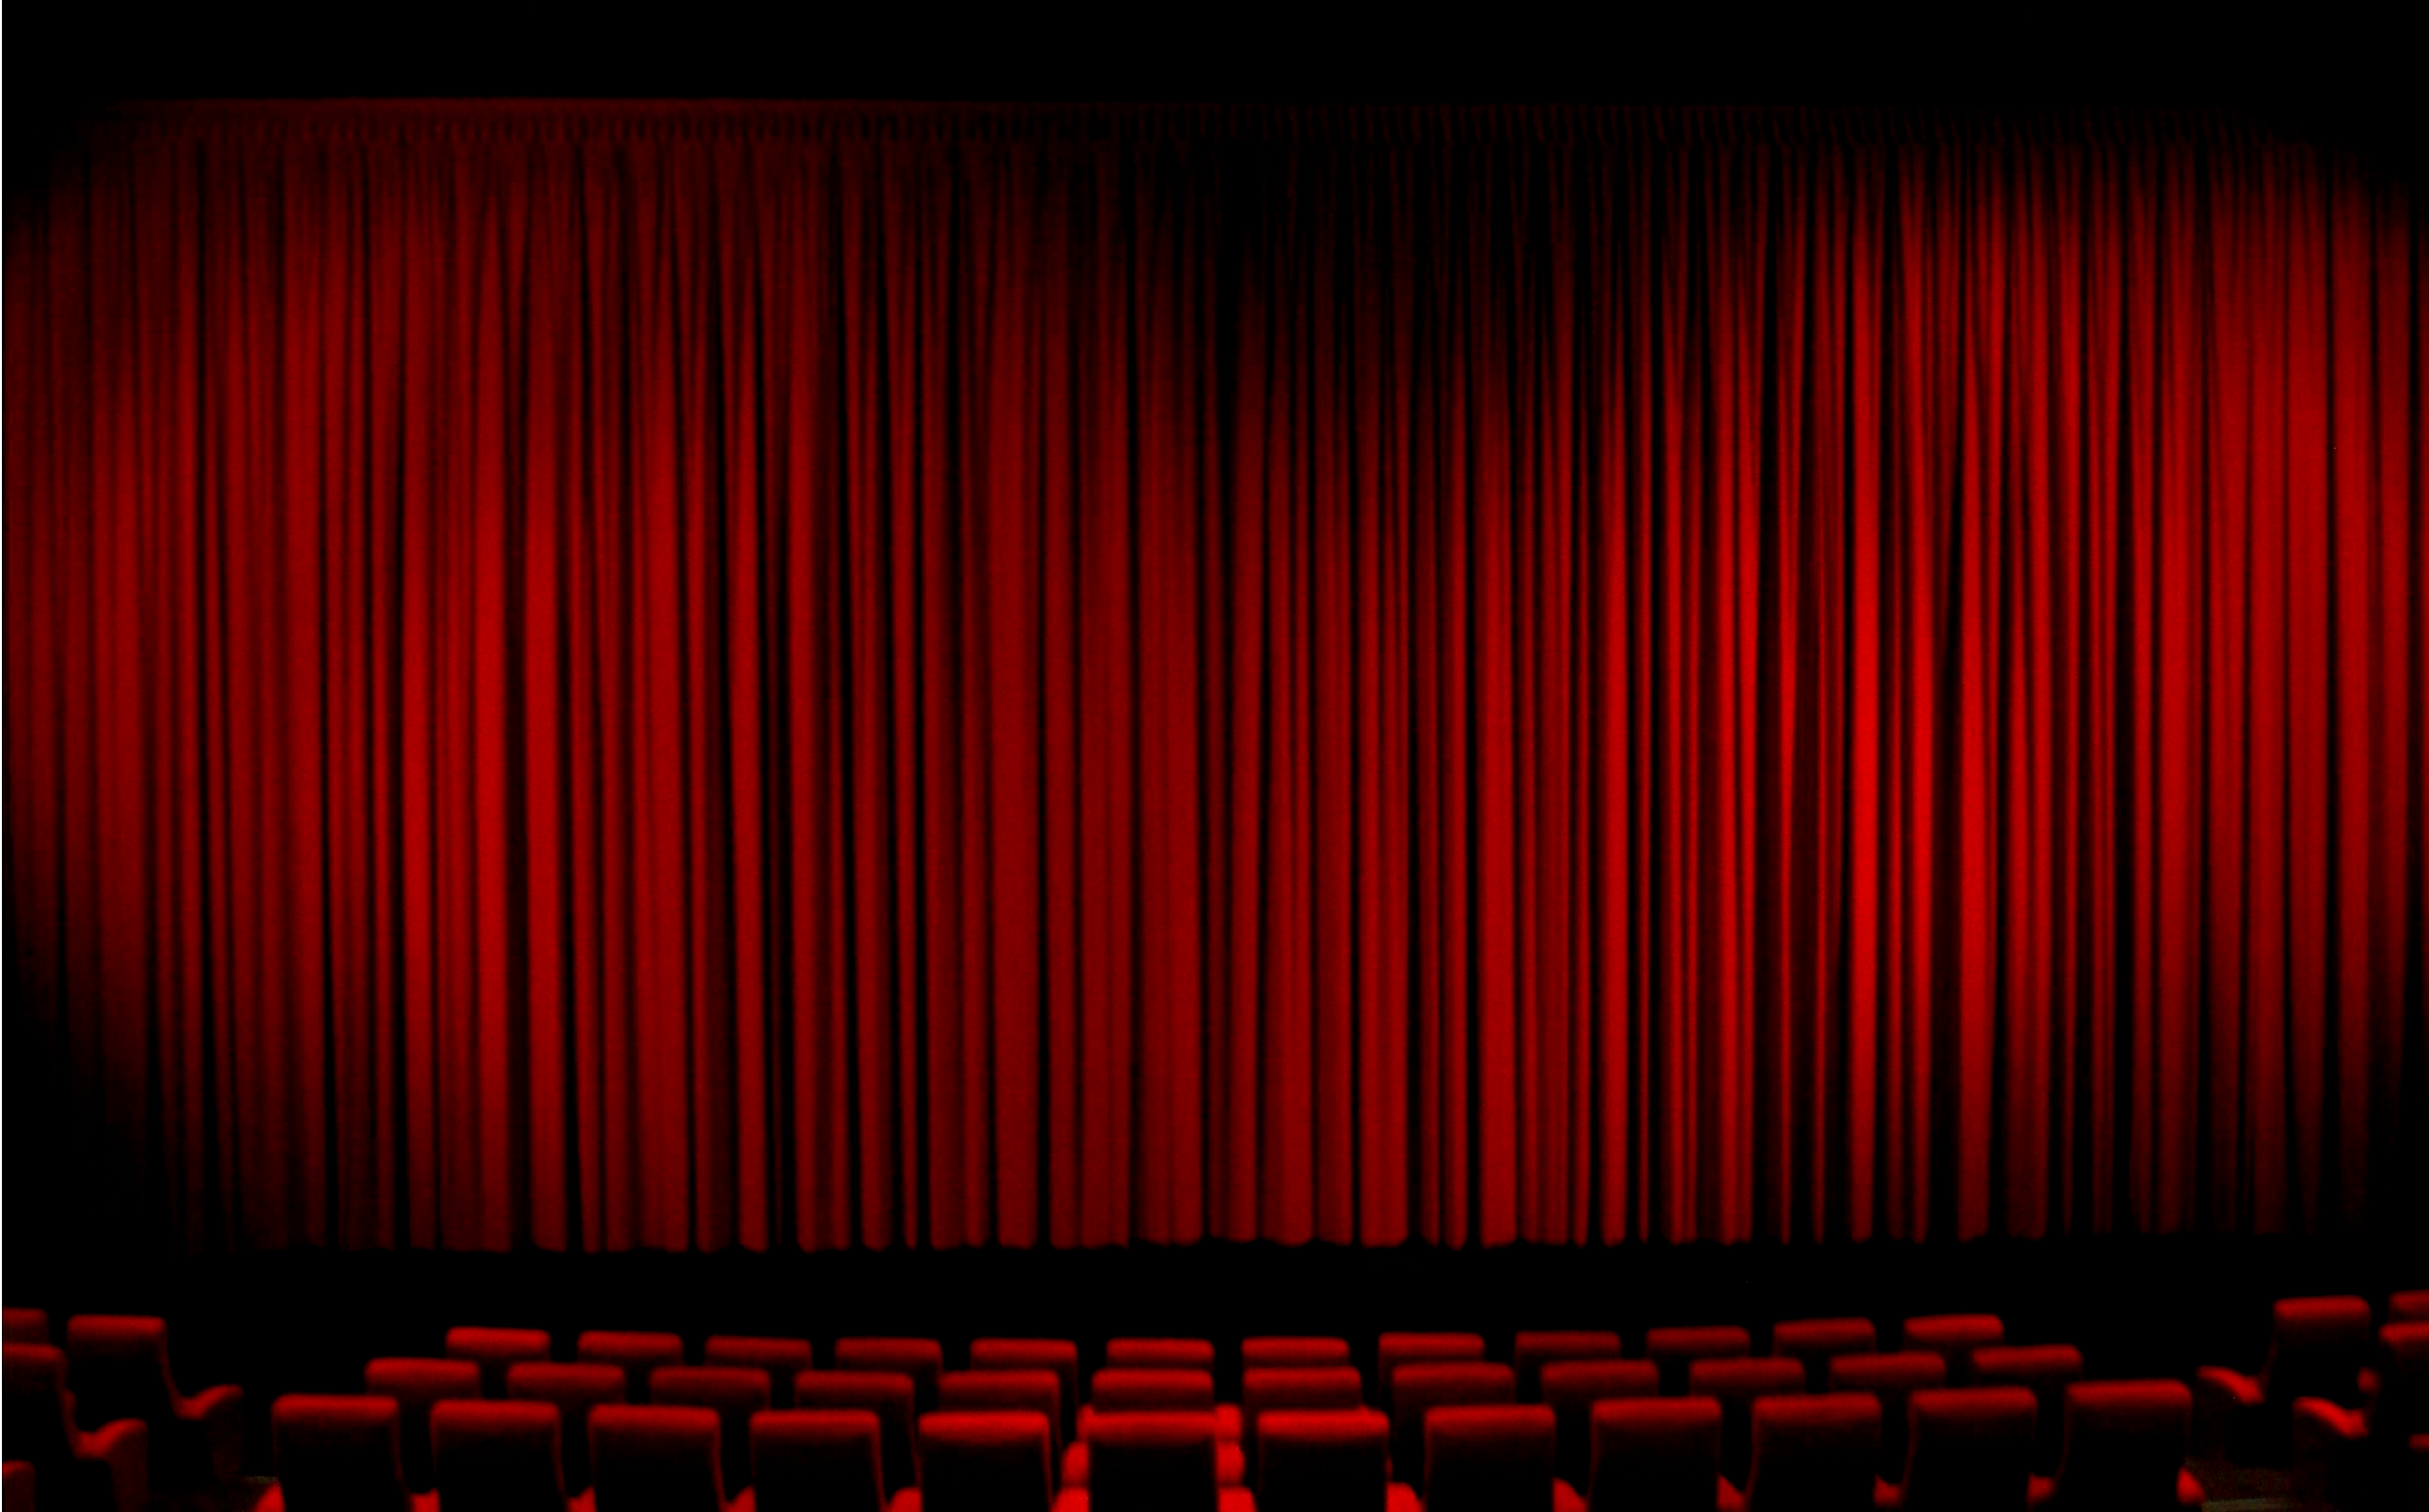 Theater Wallpaper 41 Movie Theater Wallpapers On Wallpaperplay Theater Backgrounds Wallpaper Cave Pin By Clarisse Edwar Movie Theater What Is Digital Movies